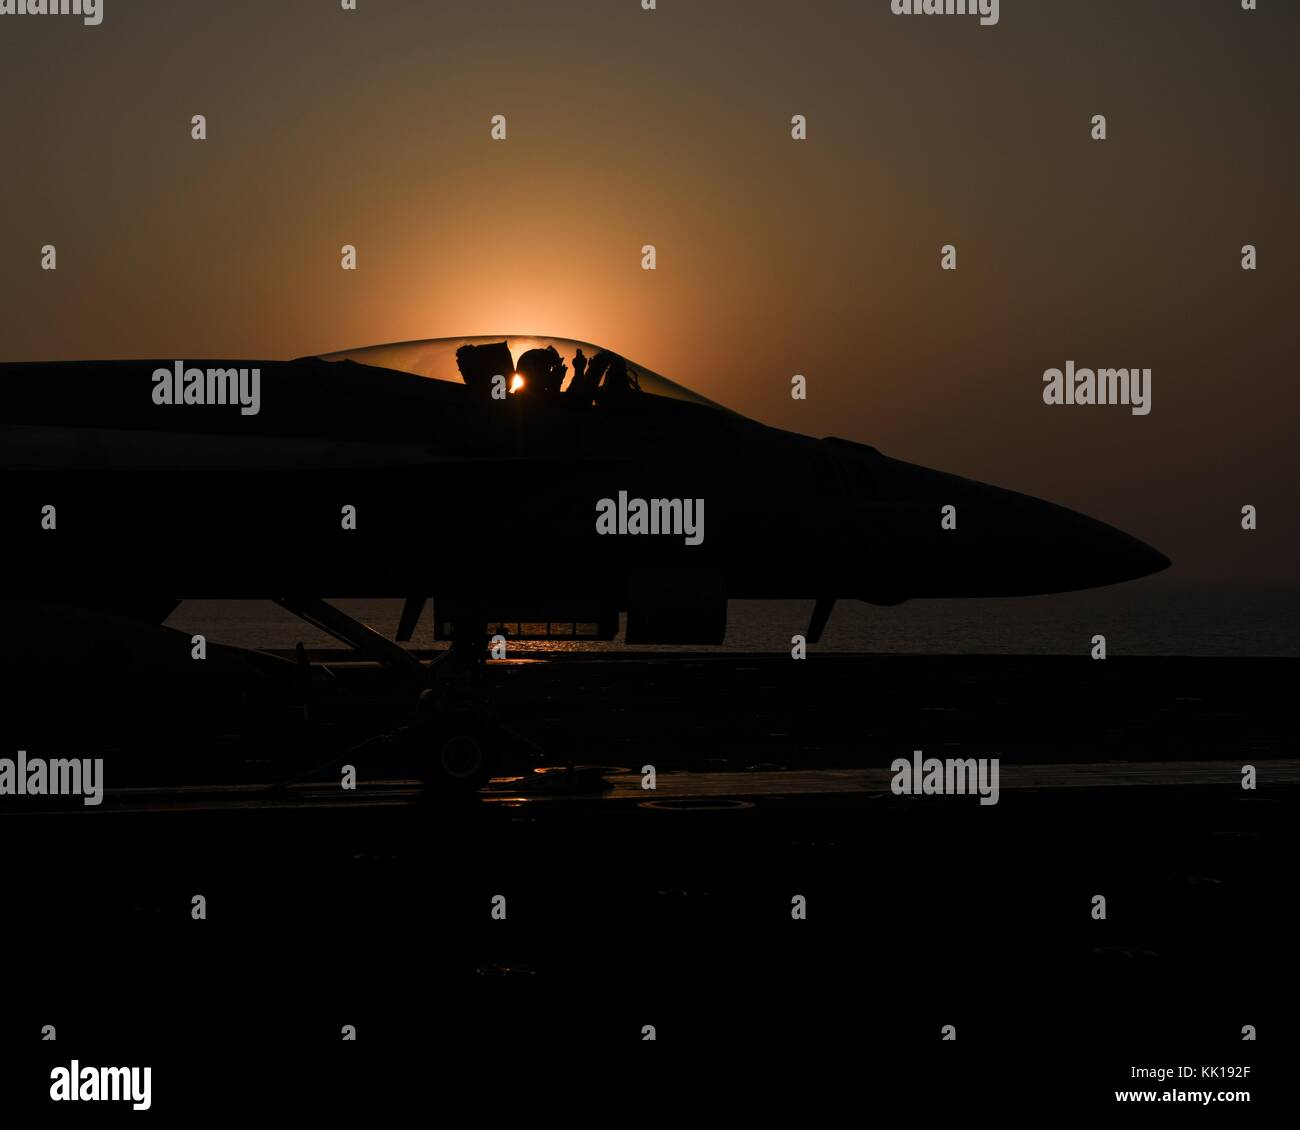 A U.S. Navy F/A-18E Super Hornet jet fighter aircraft prepares to launch from the flight deck of the U.S. Navy Nimitz Stock Photo